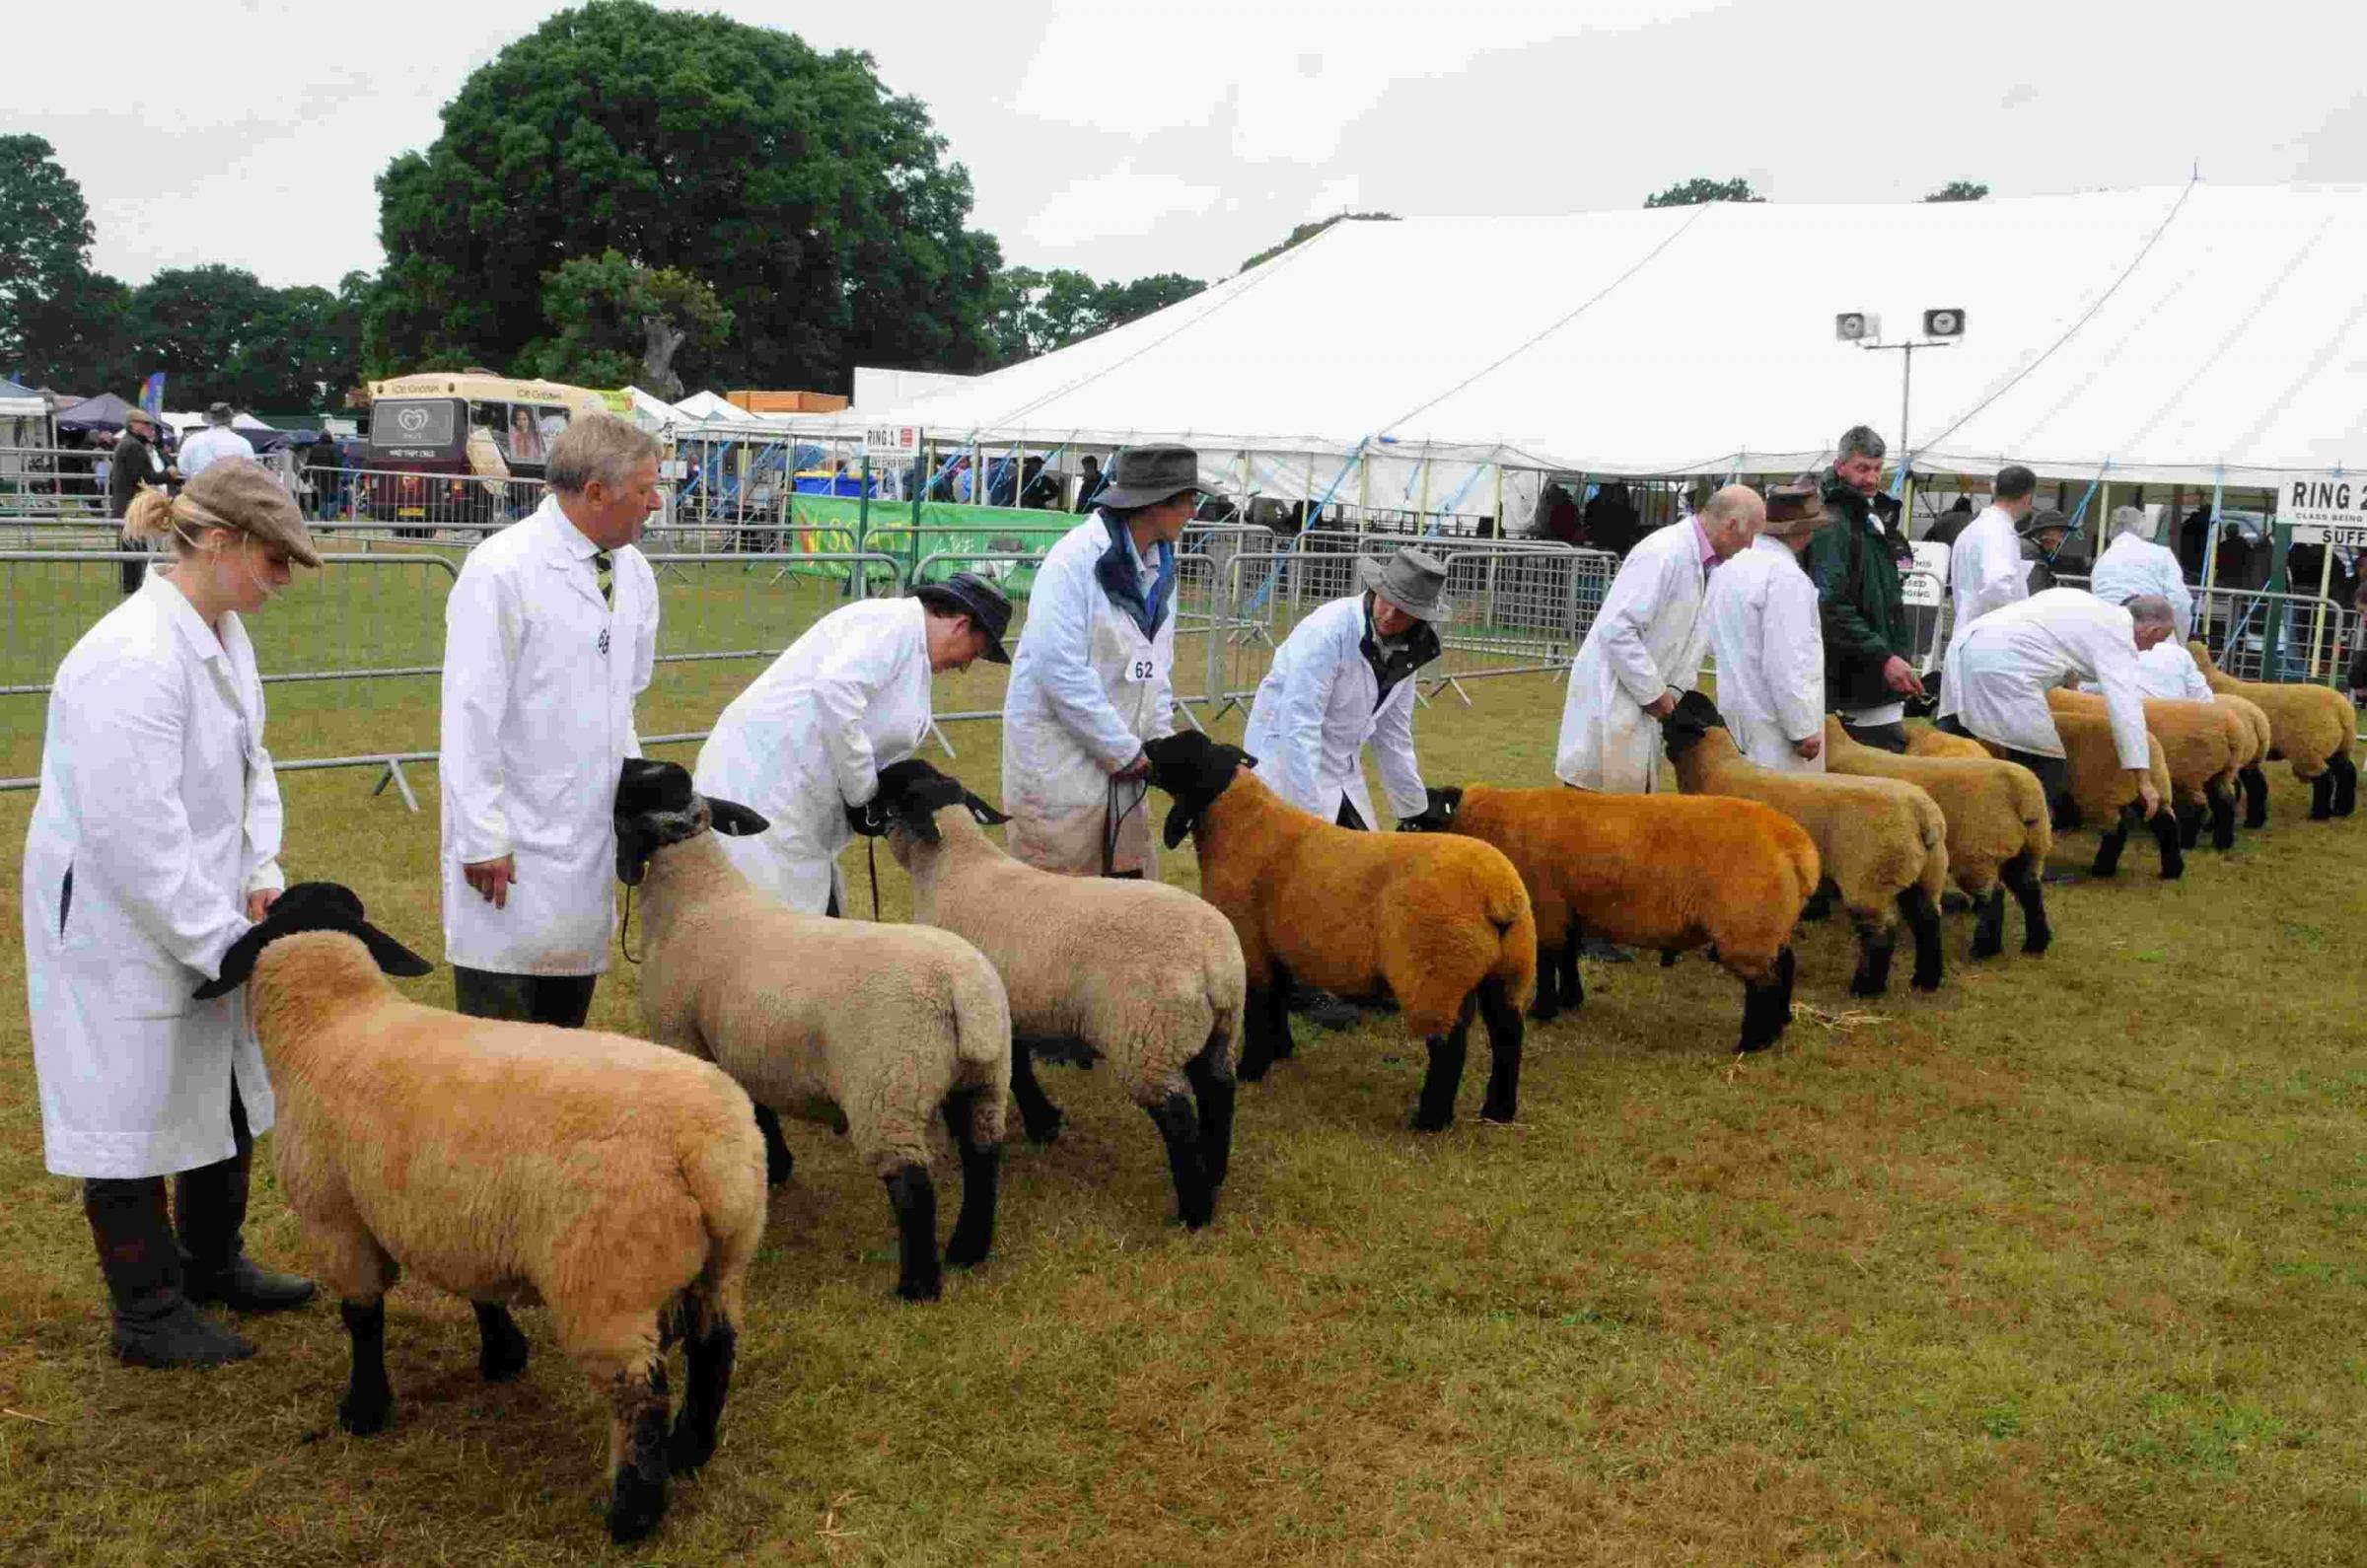 10 things not to be missed at the New Forest Show